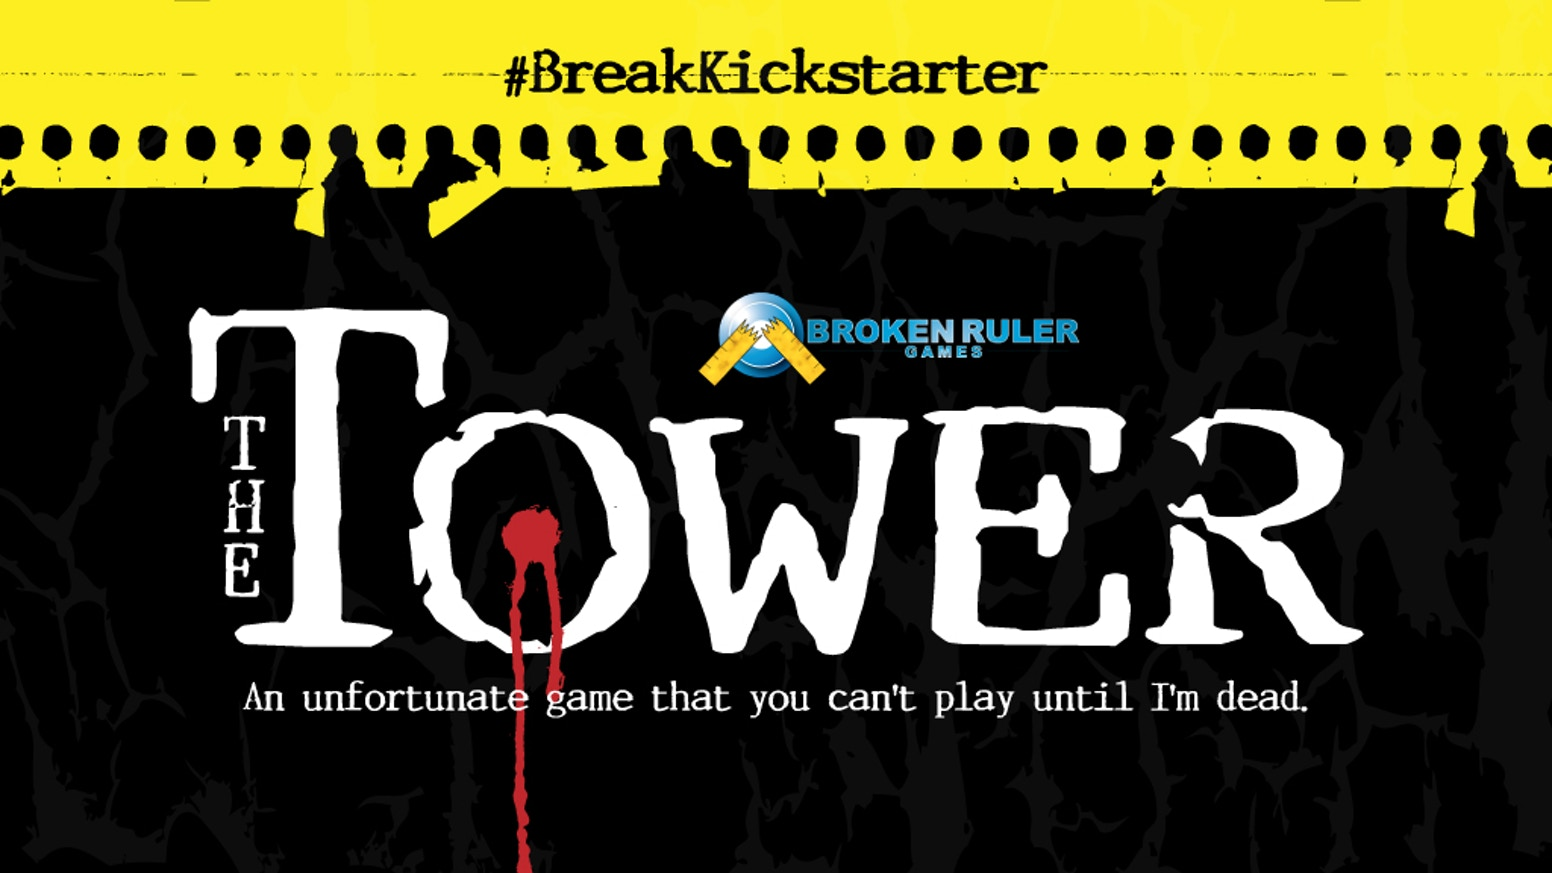 A tabletop roleplaying game for #BreakKickstarter where you don't get to play the game until the creator is dead.